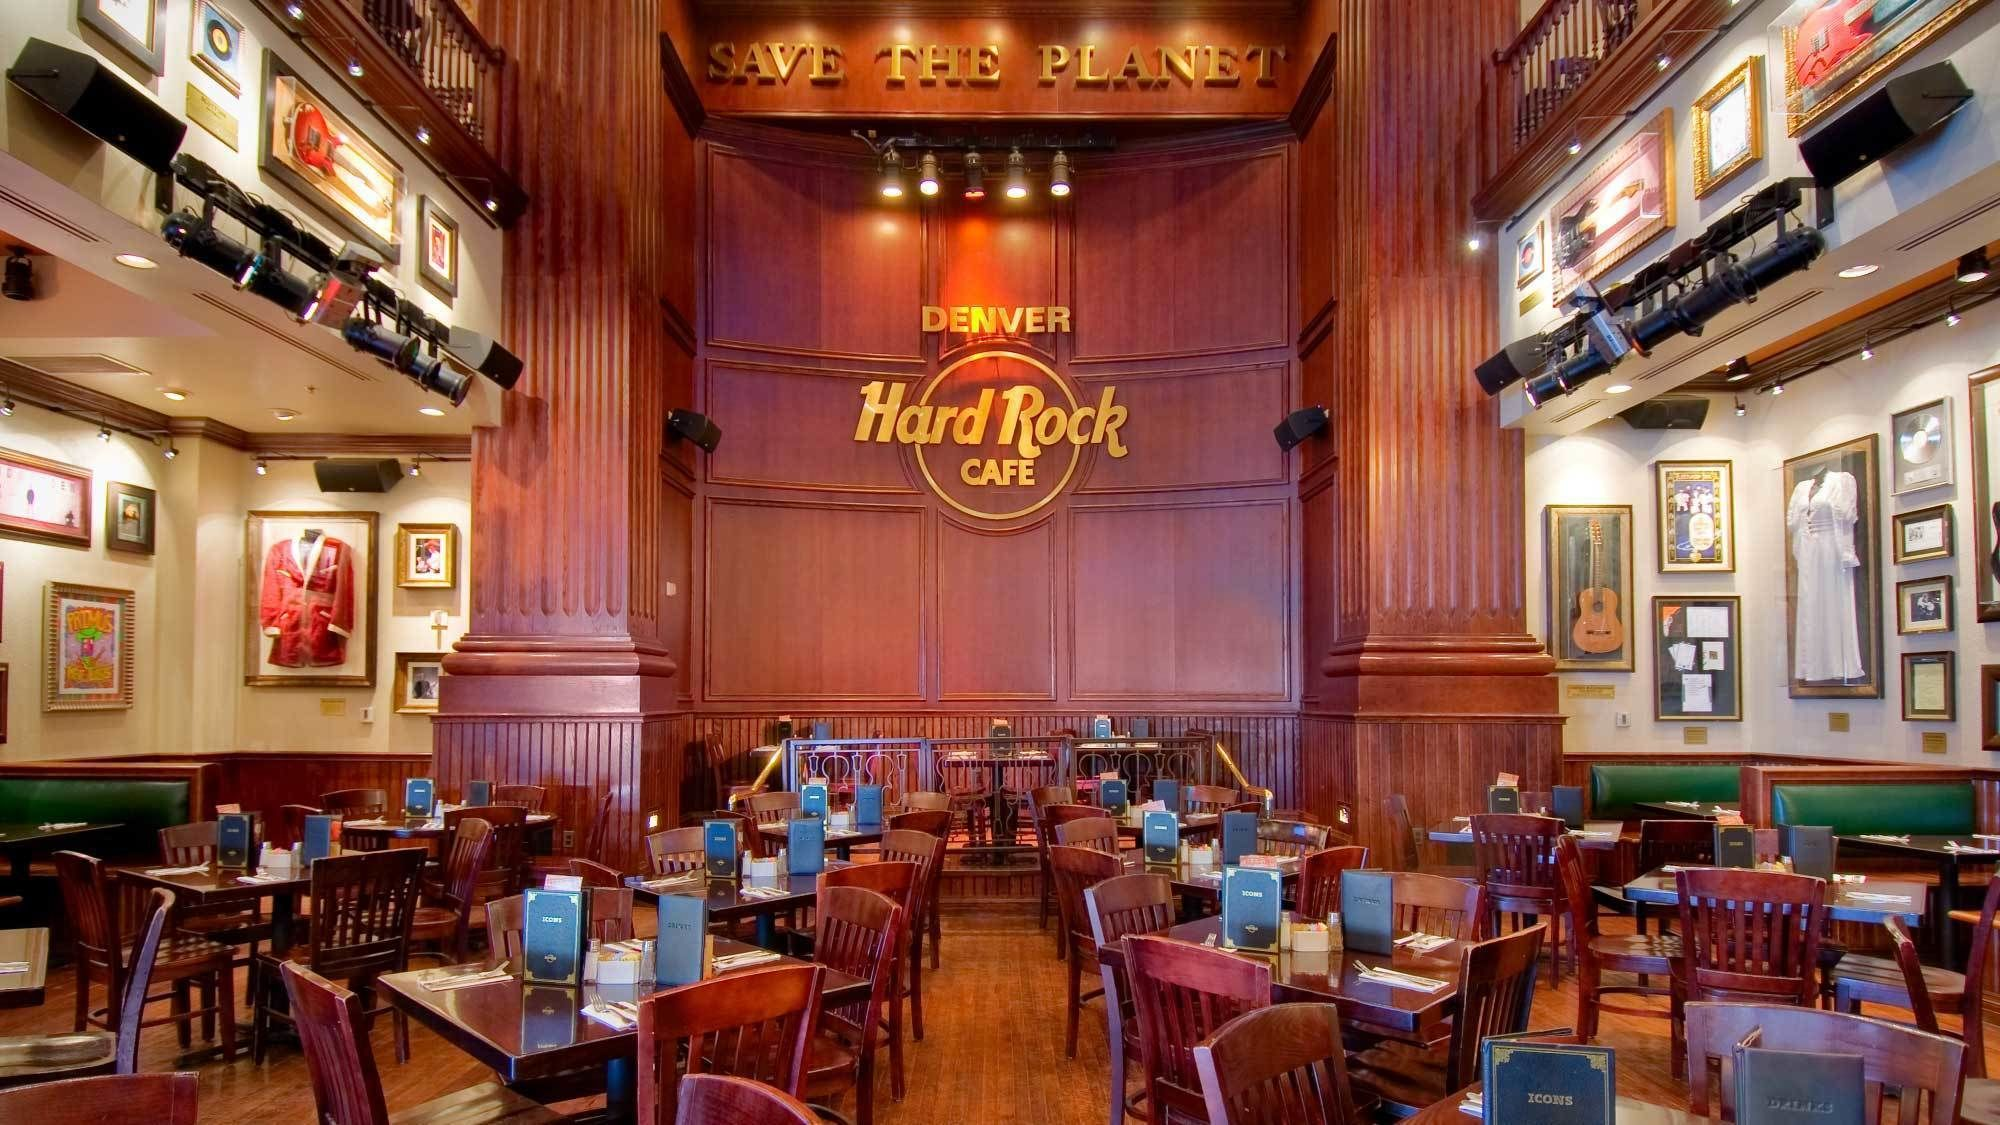 Dining at Hard Rock Cafe Denver with Priority Seating